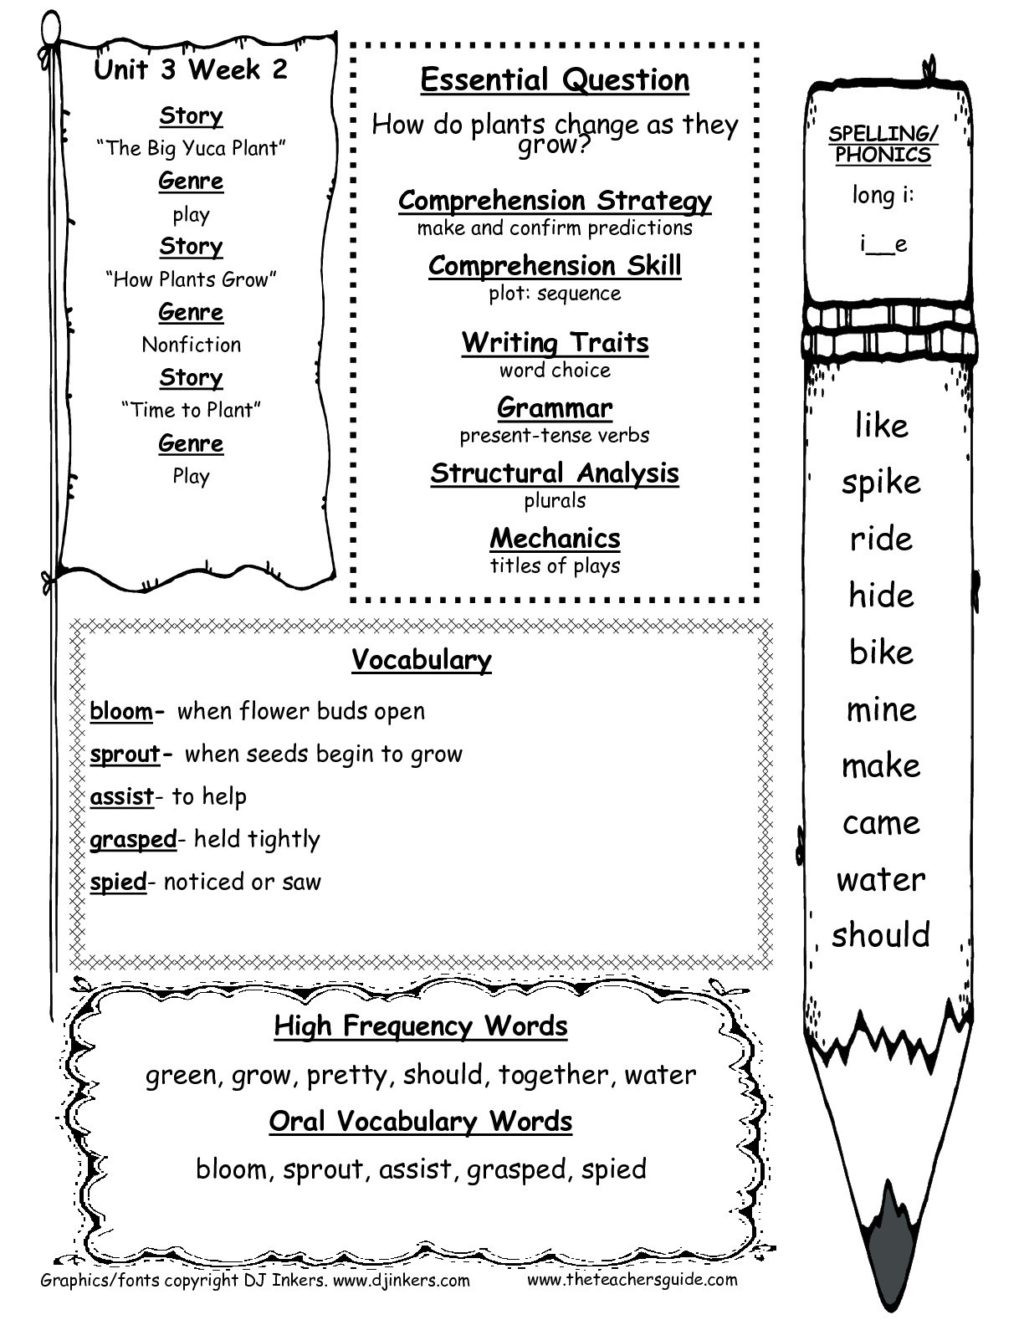 Sequencing Worksheet First Grade Worksheet Spellingords for 1st Grade Image Ideasorksheets